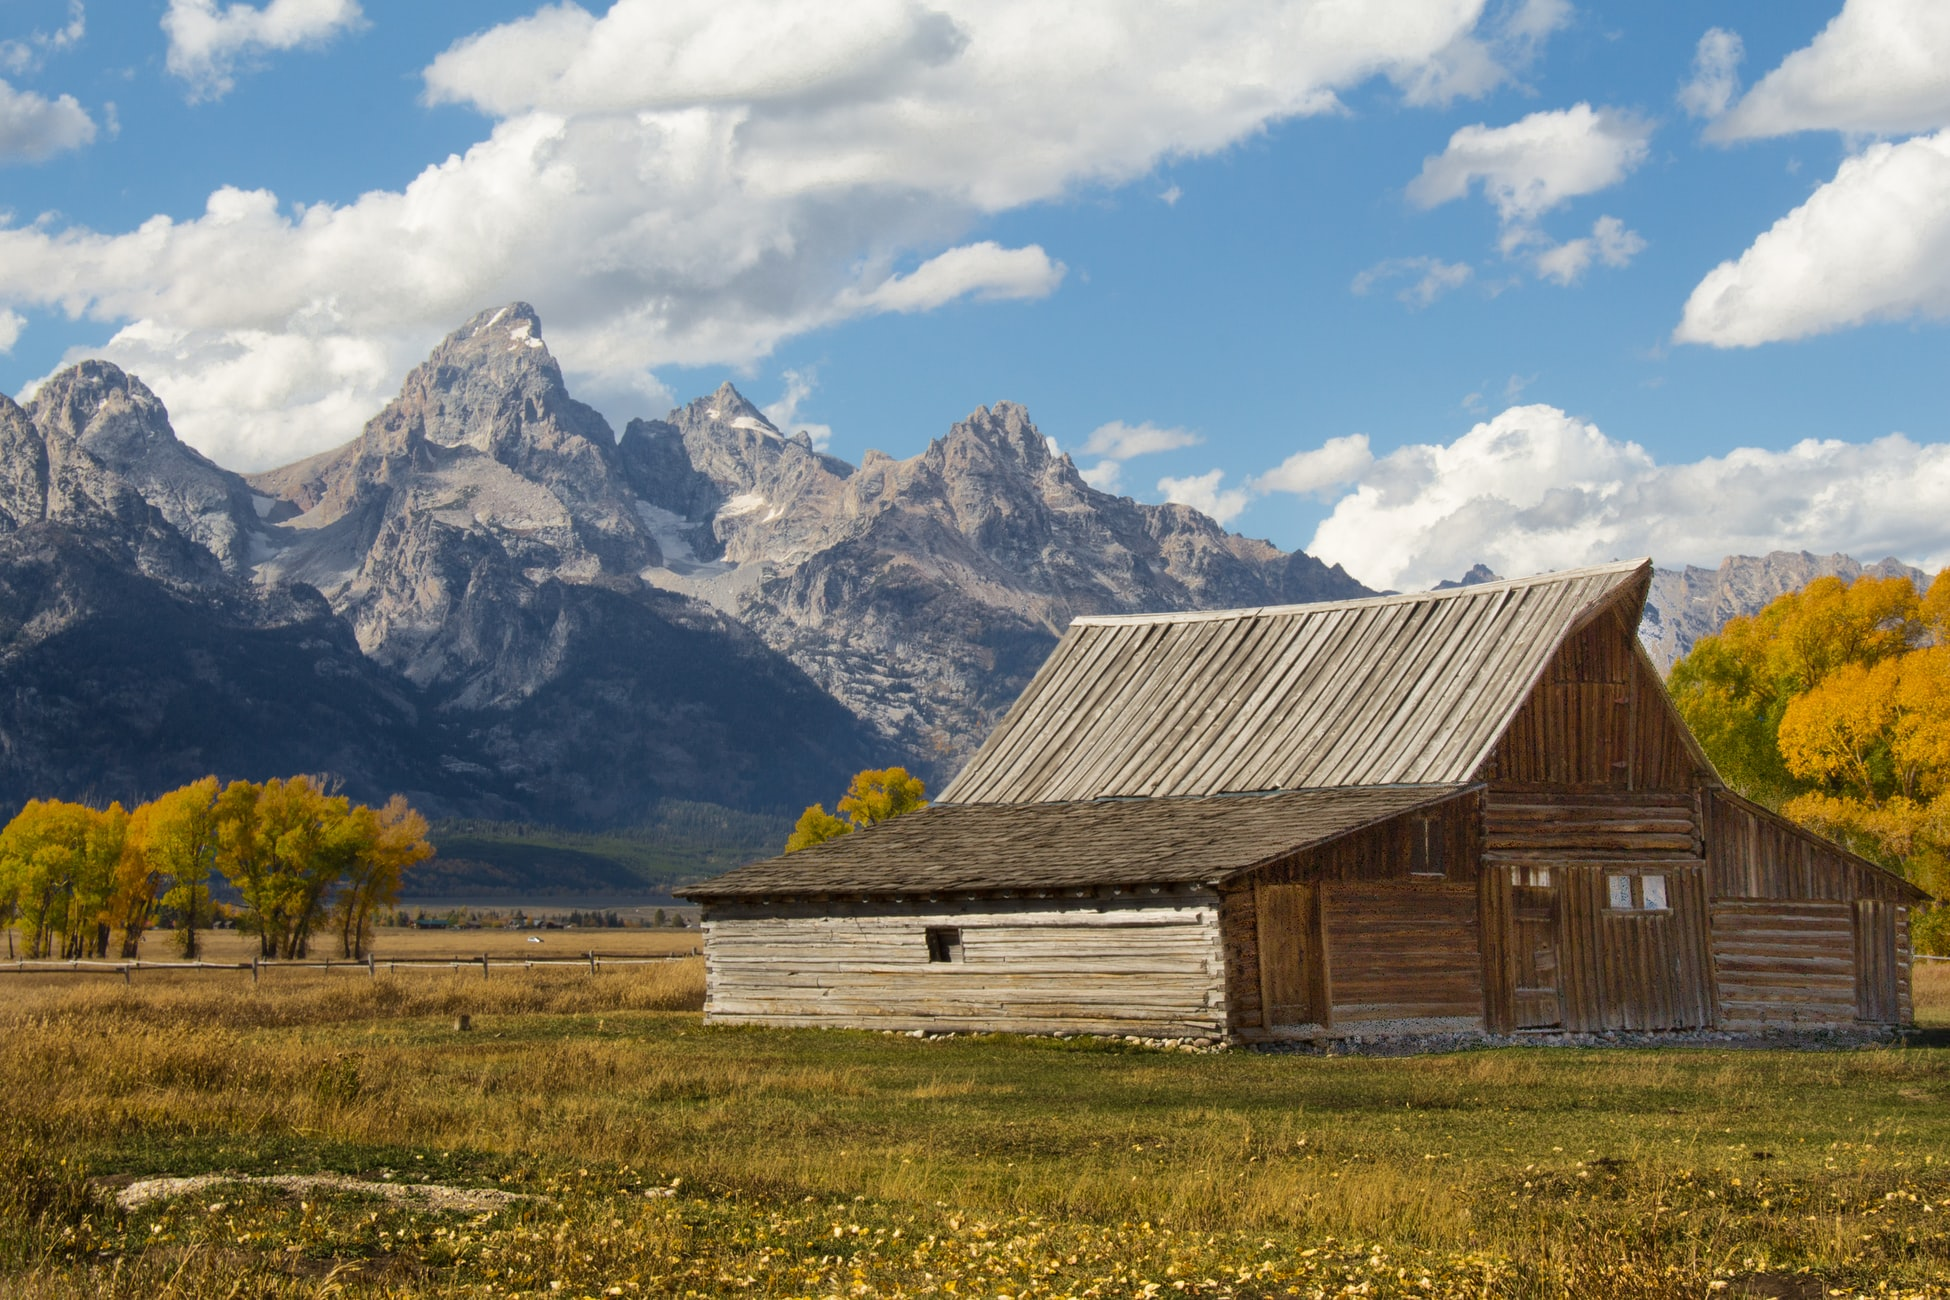 a cabin in the shadow of the Grand Tetons near Jackson Hole, WY